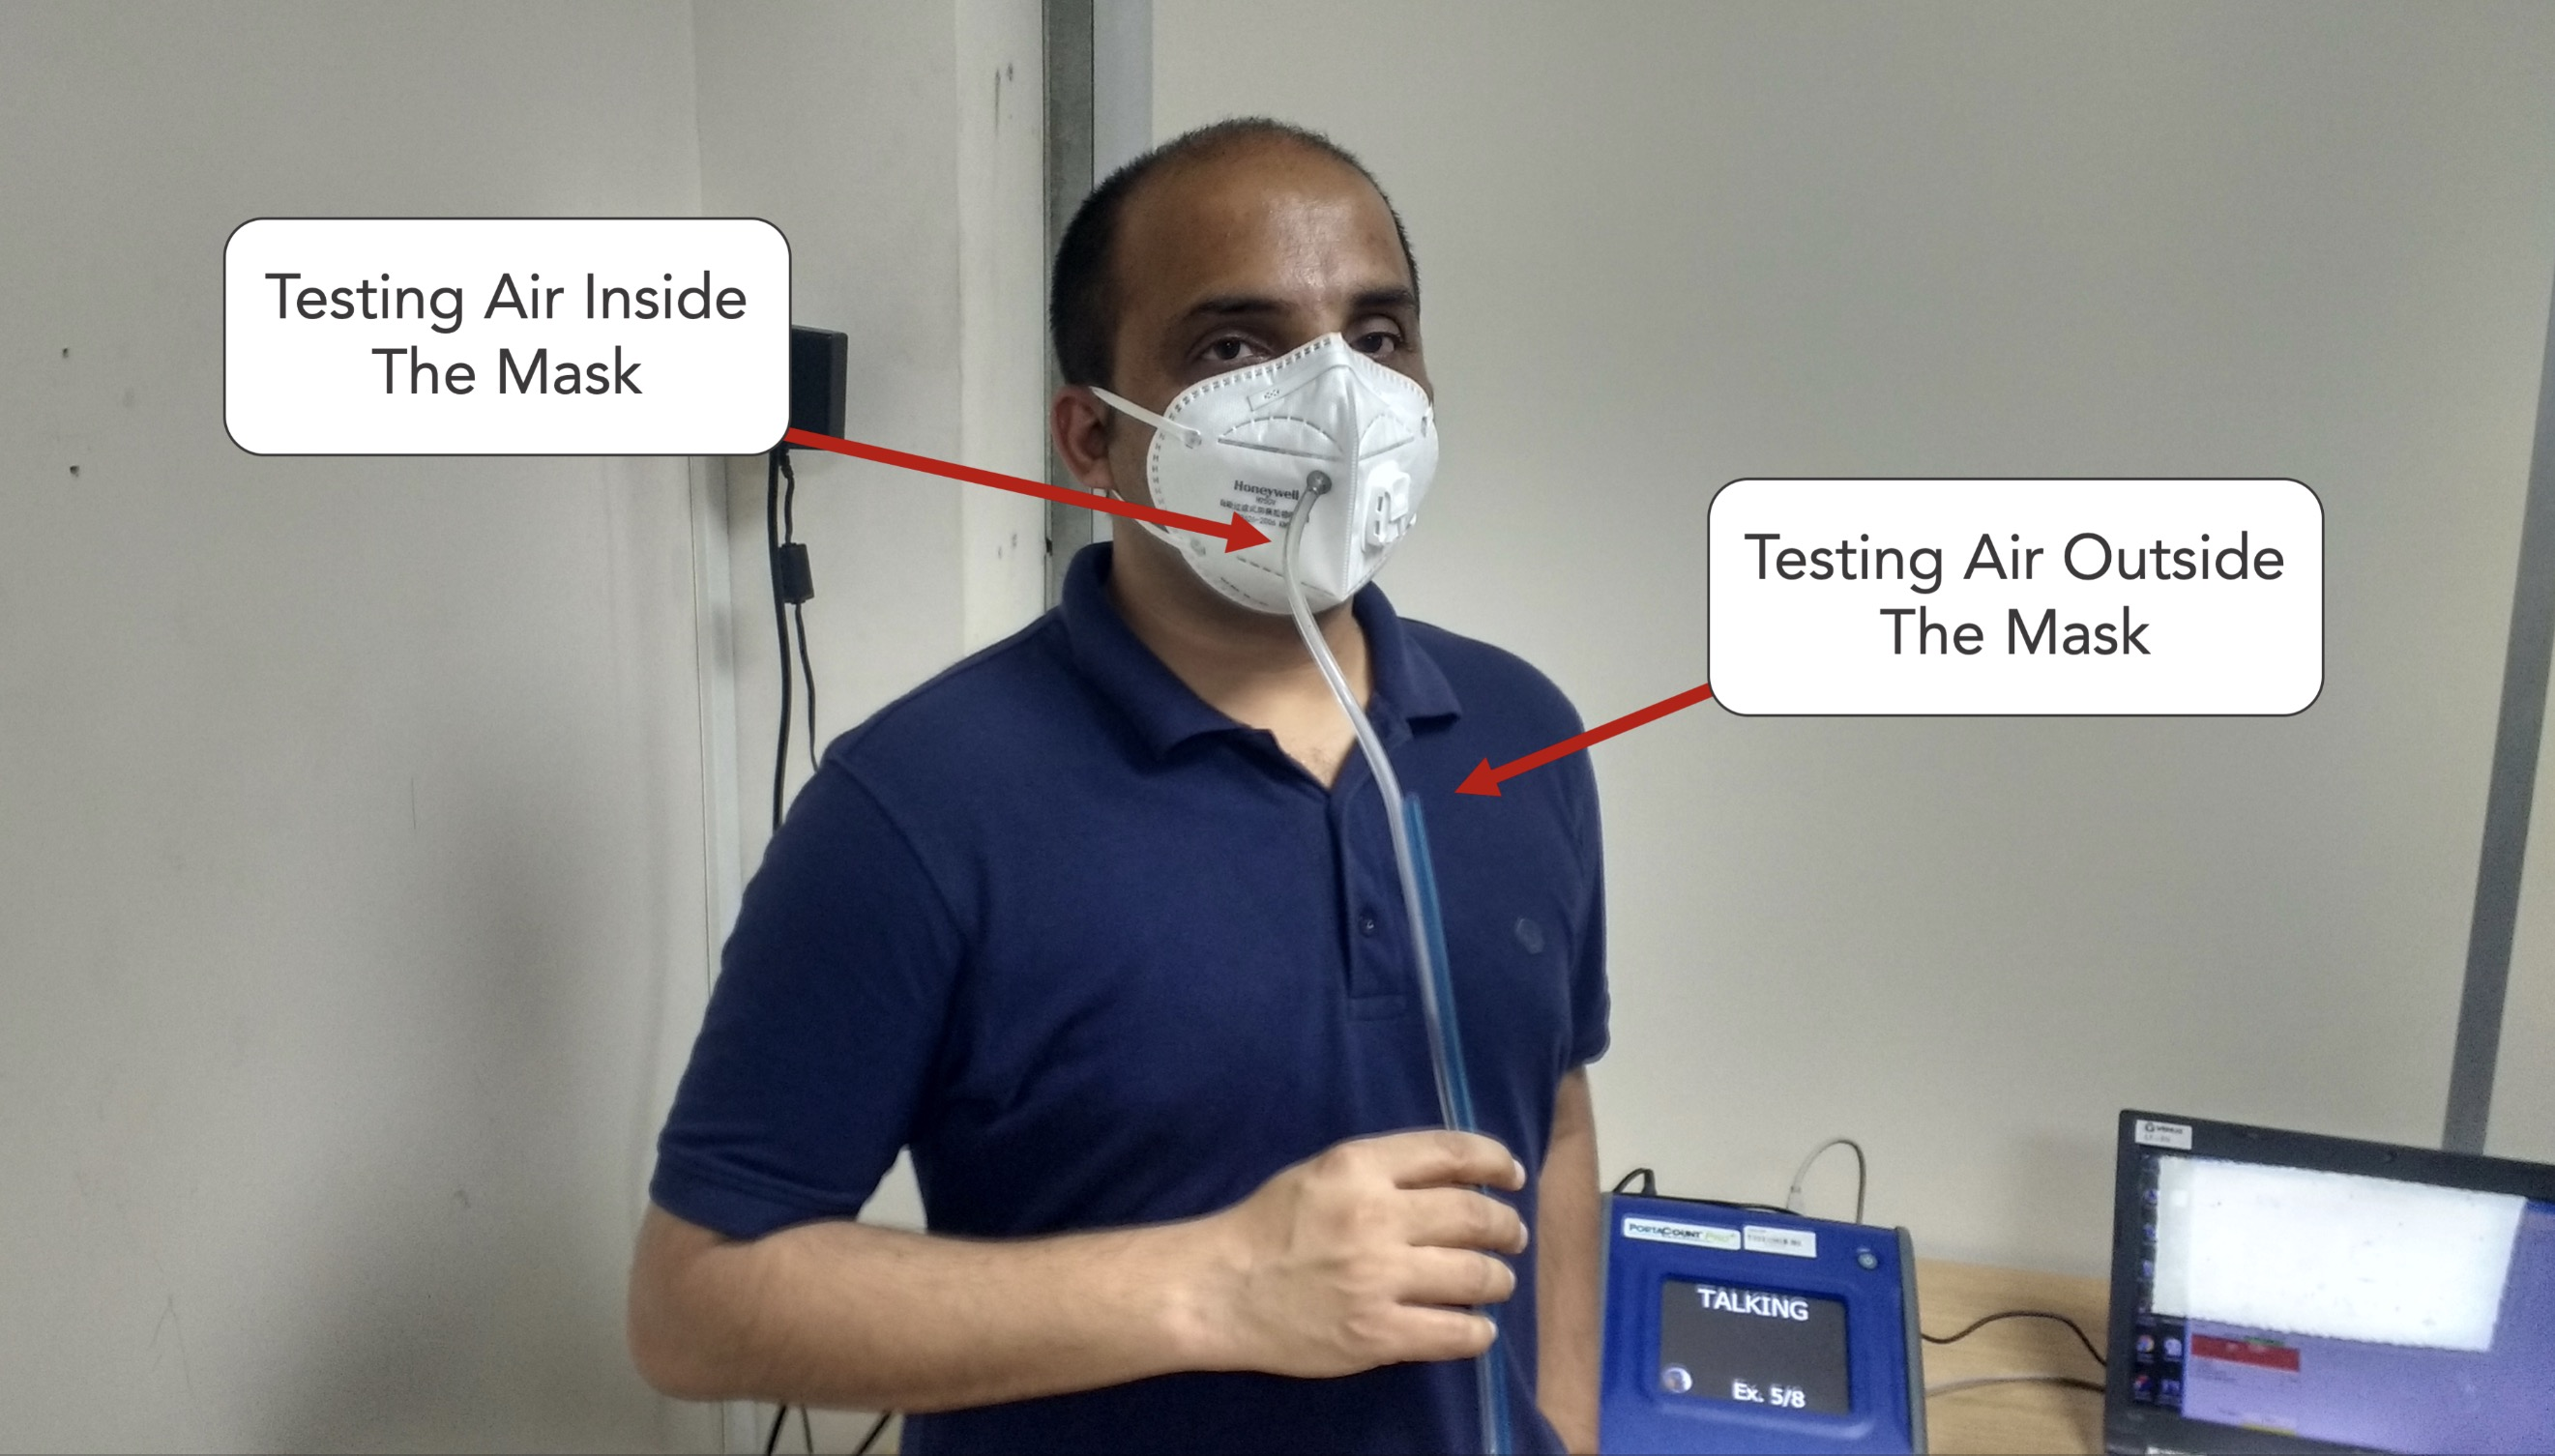 Testing the time length masks last